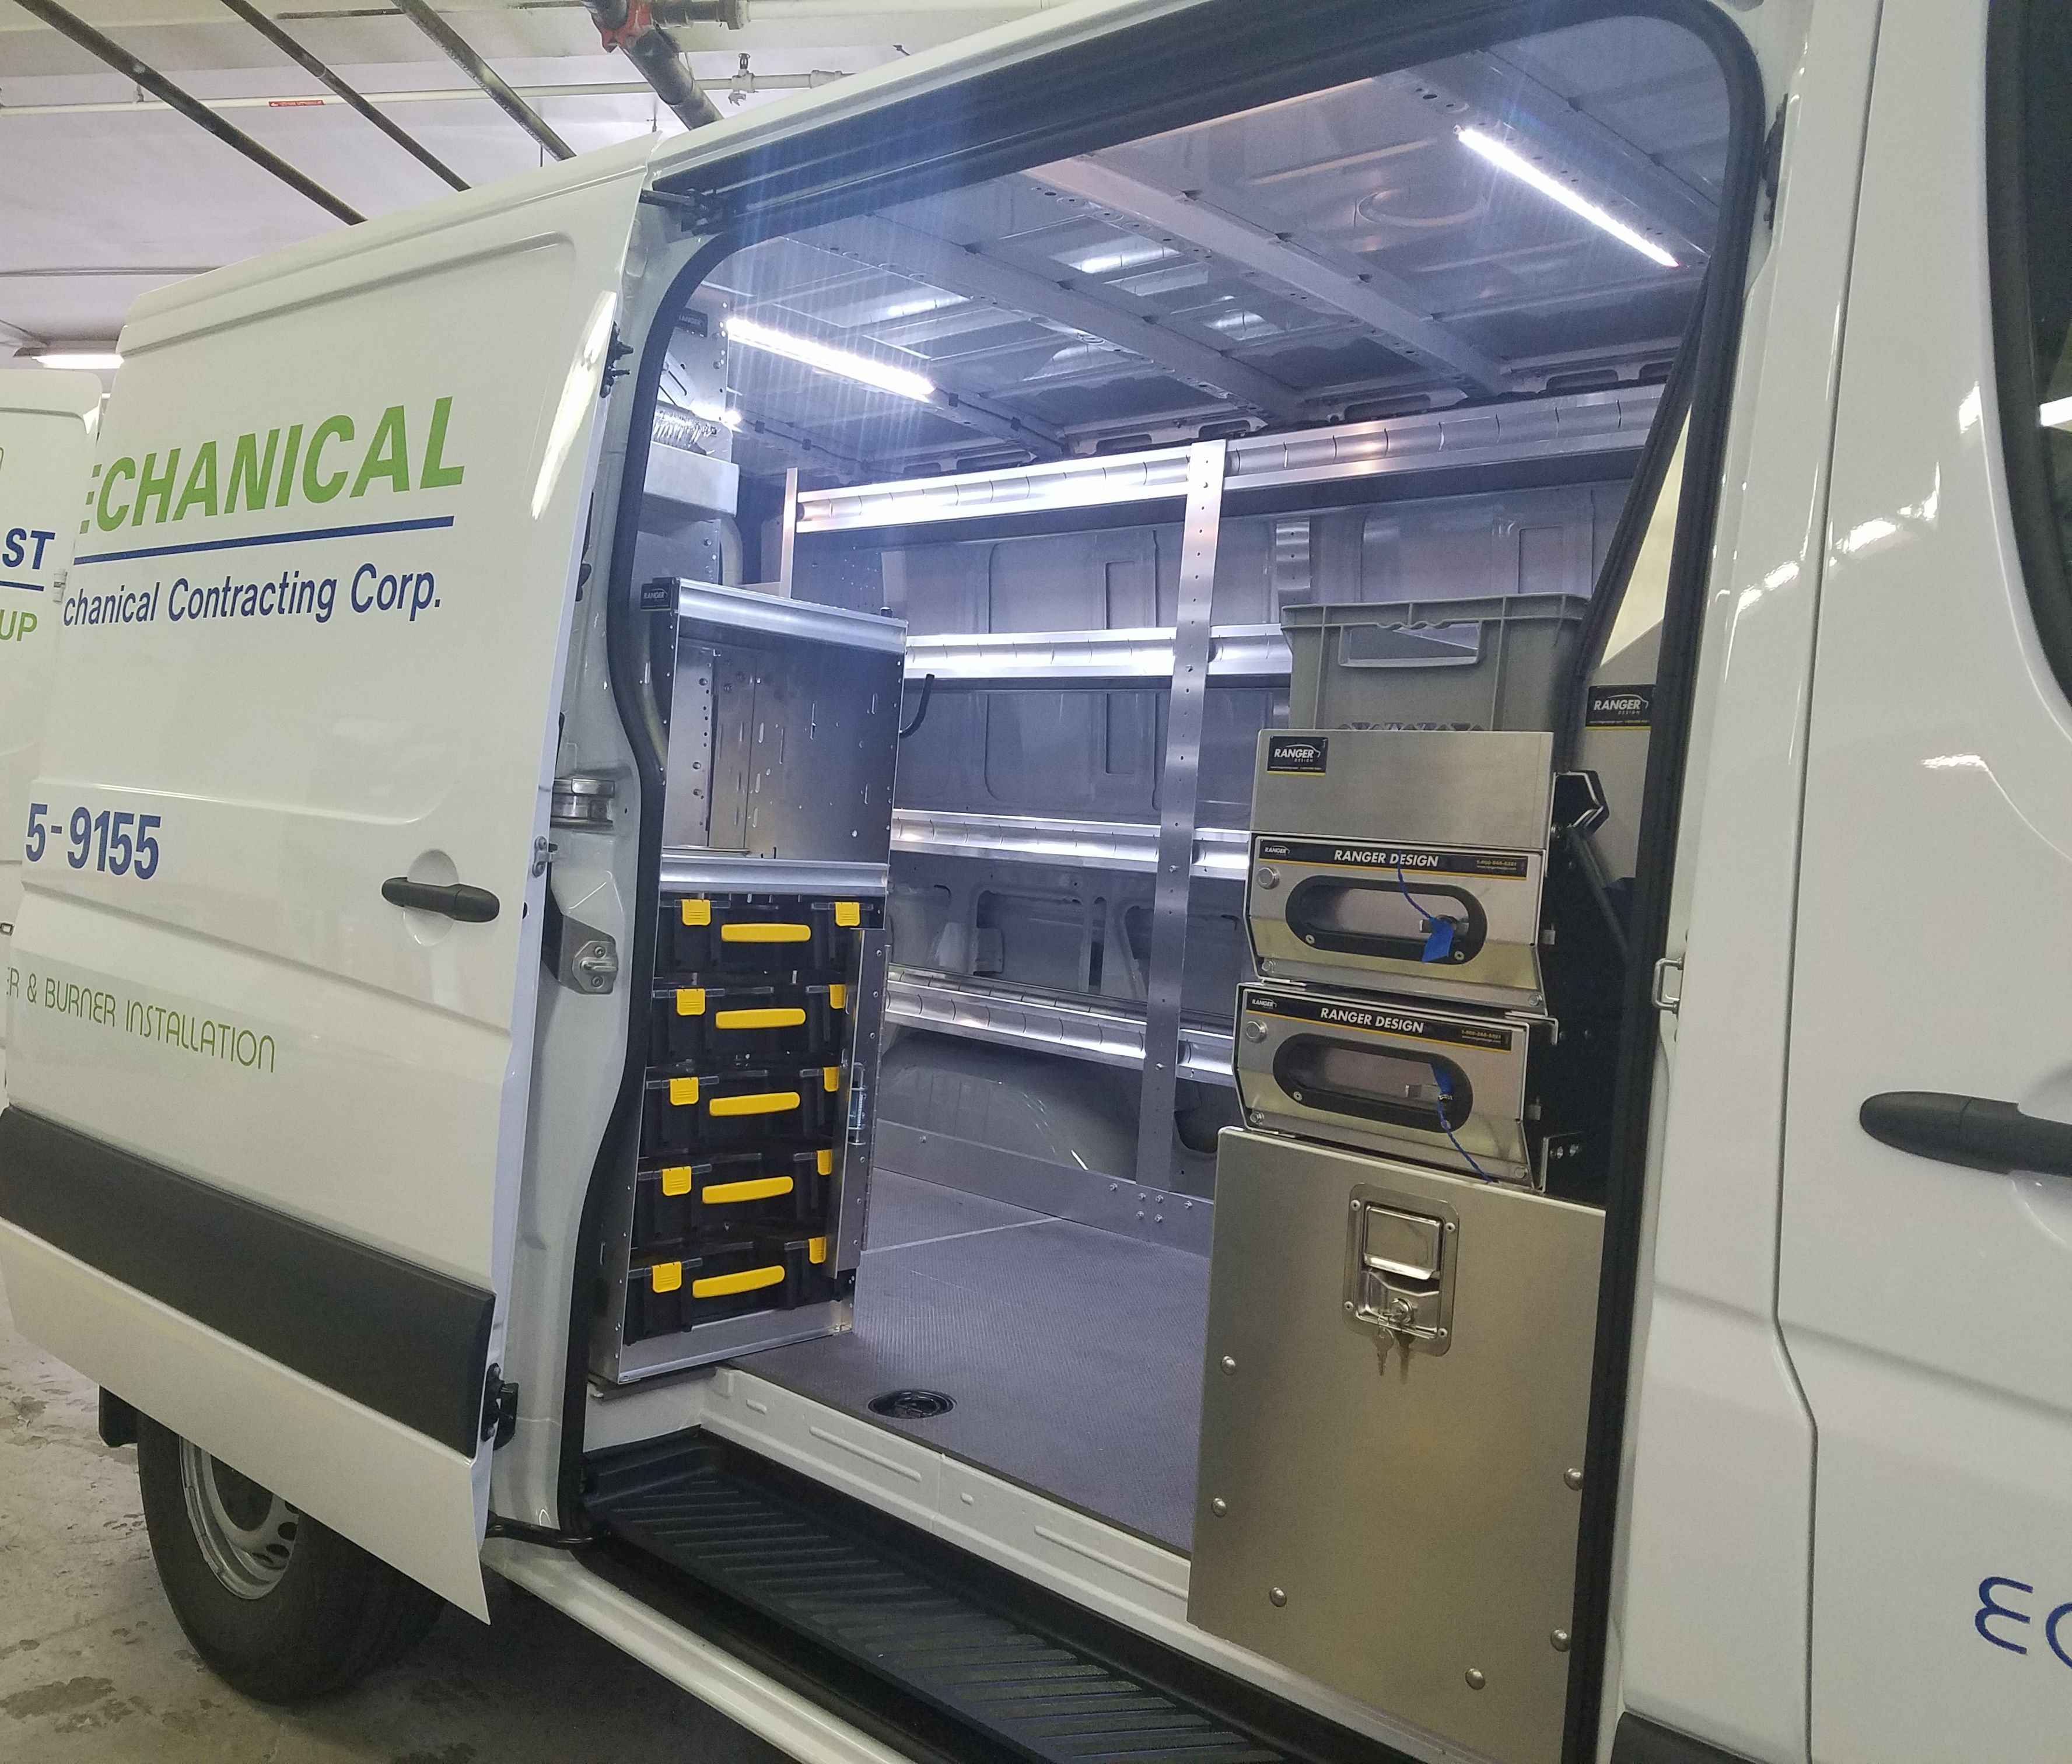 Check Out Our Van Storage Drawers And Accessories For Cargo Work